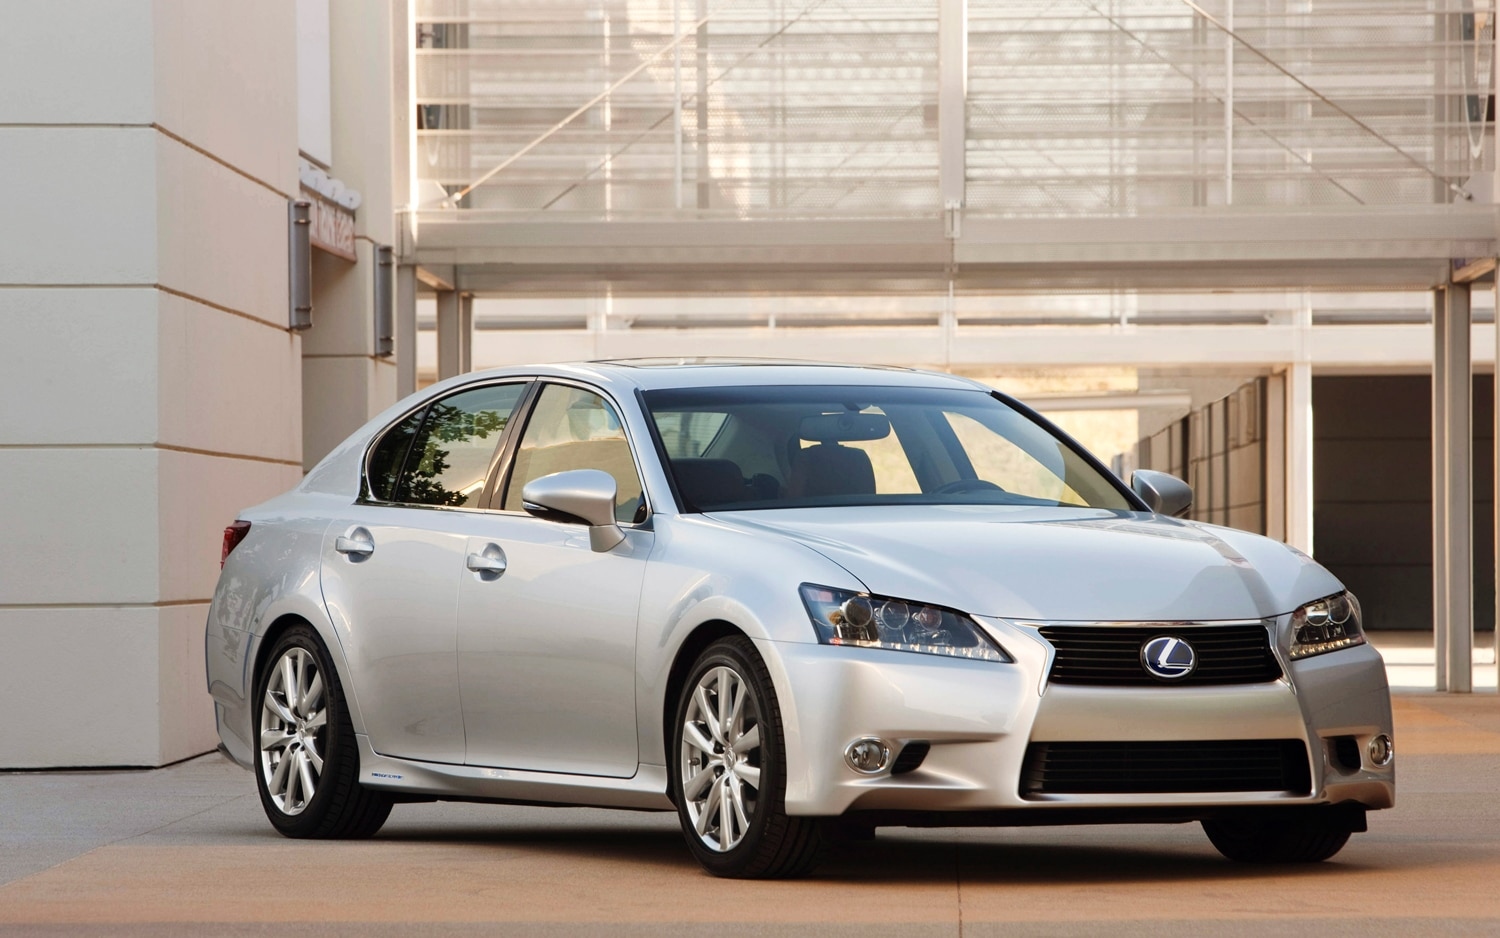 2013 Lexus GS 450h Front Three Quarter1